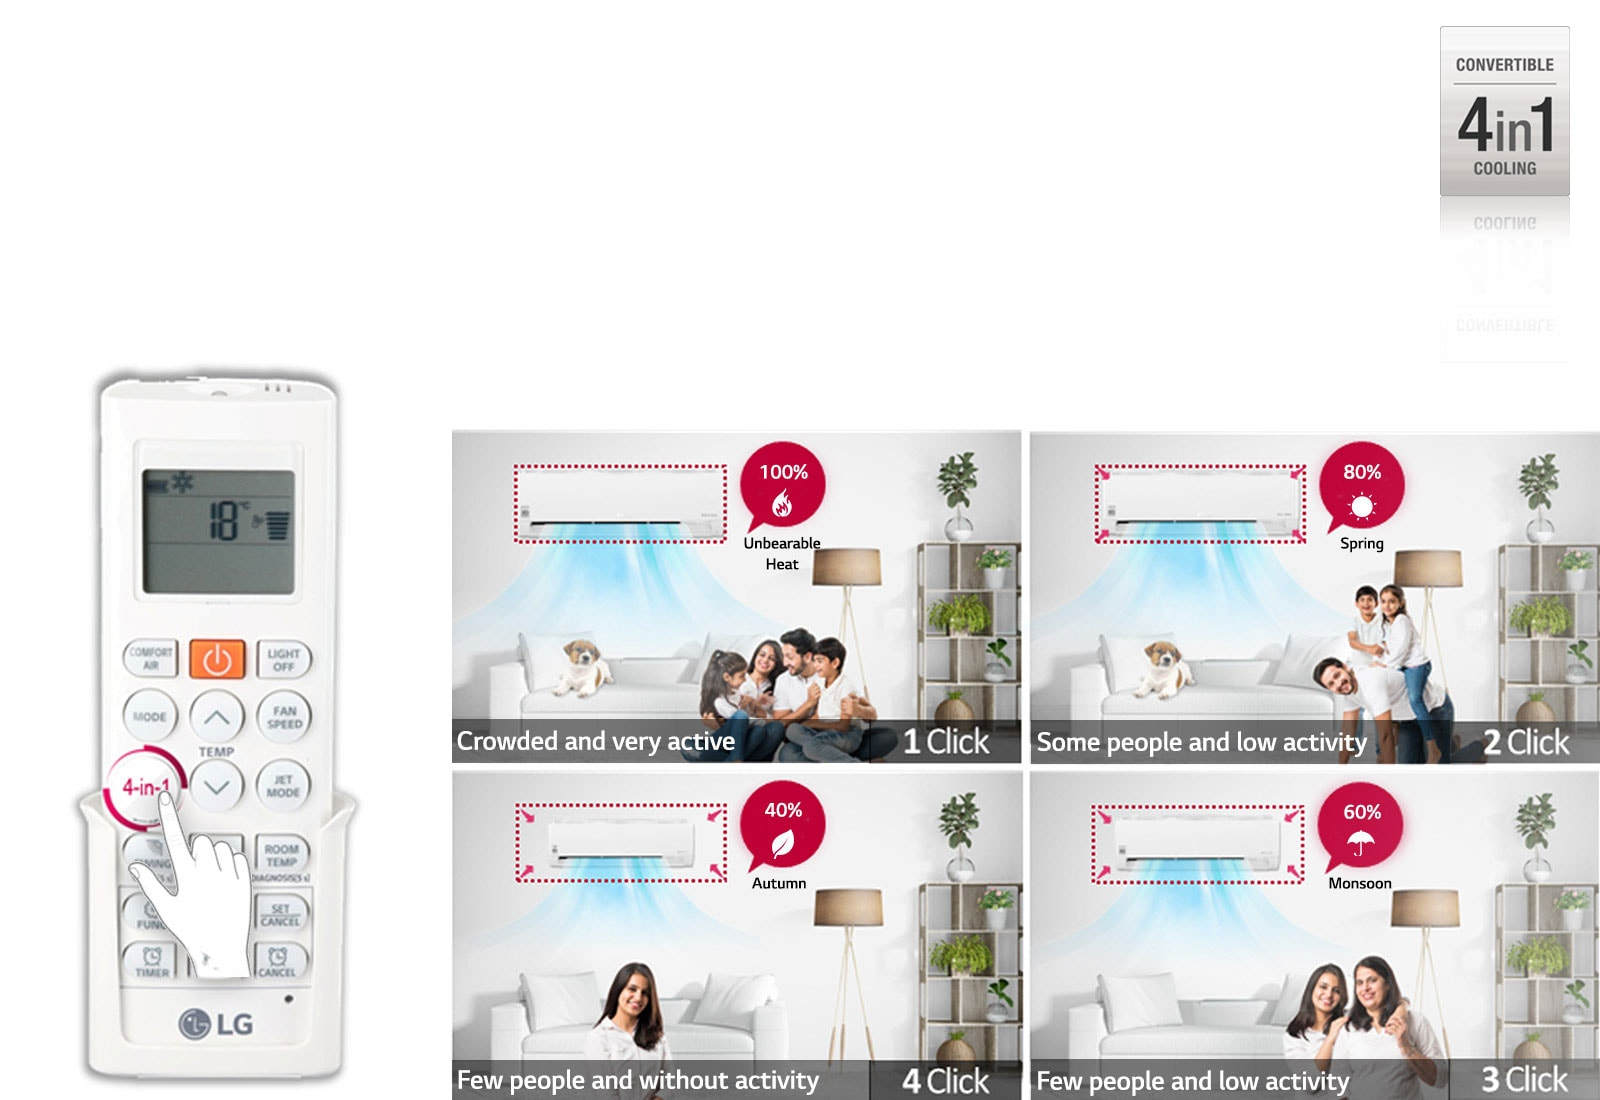 LG LS-Q18BNYD 4 in 1 convertible cooling